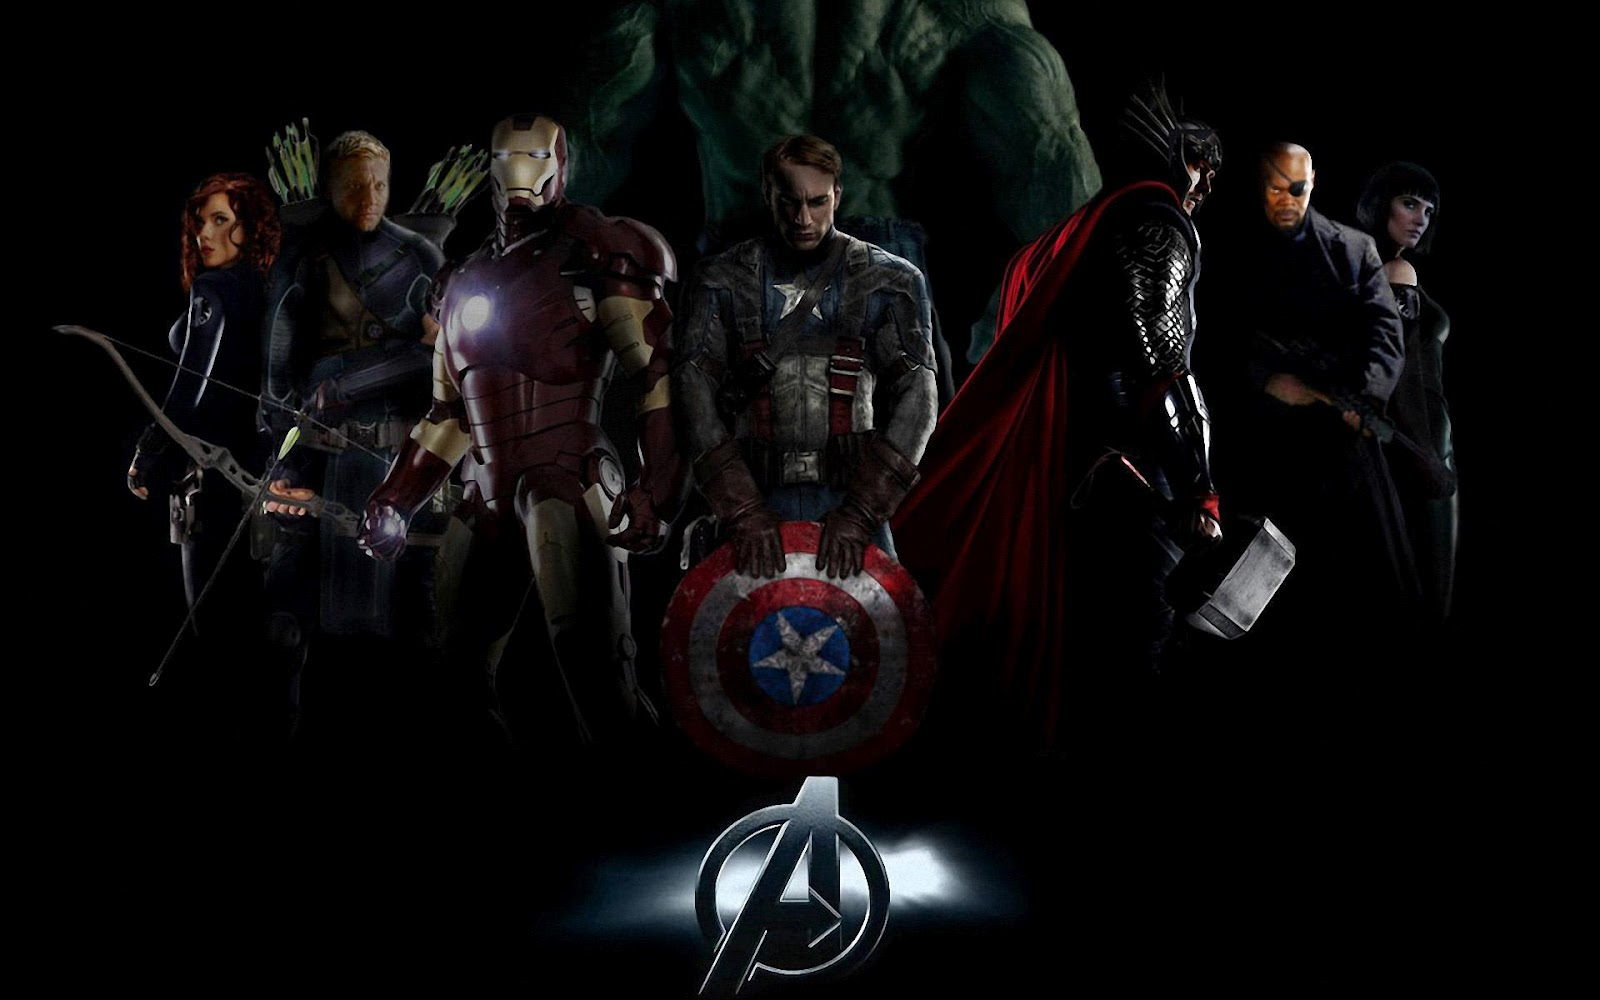 Download Hd Wallpapers Of Avengers Group 1600x1000